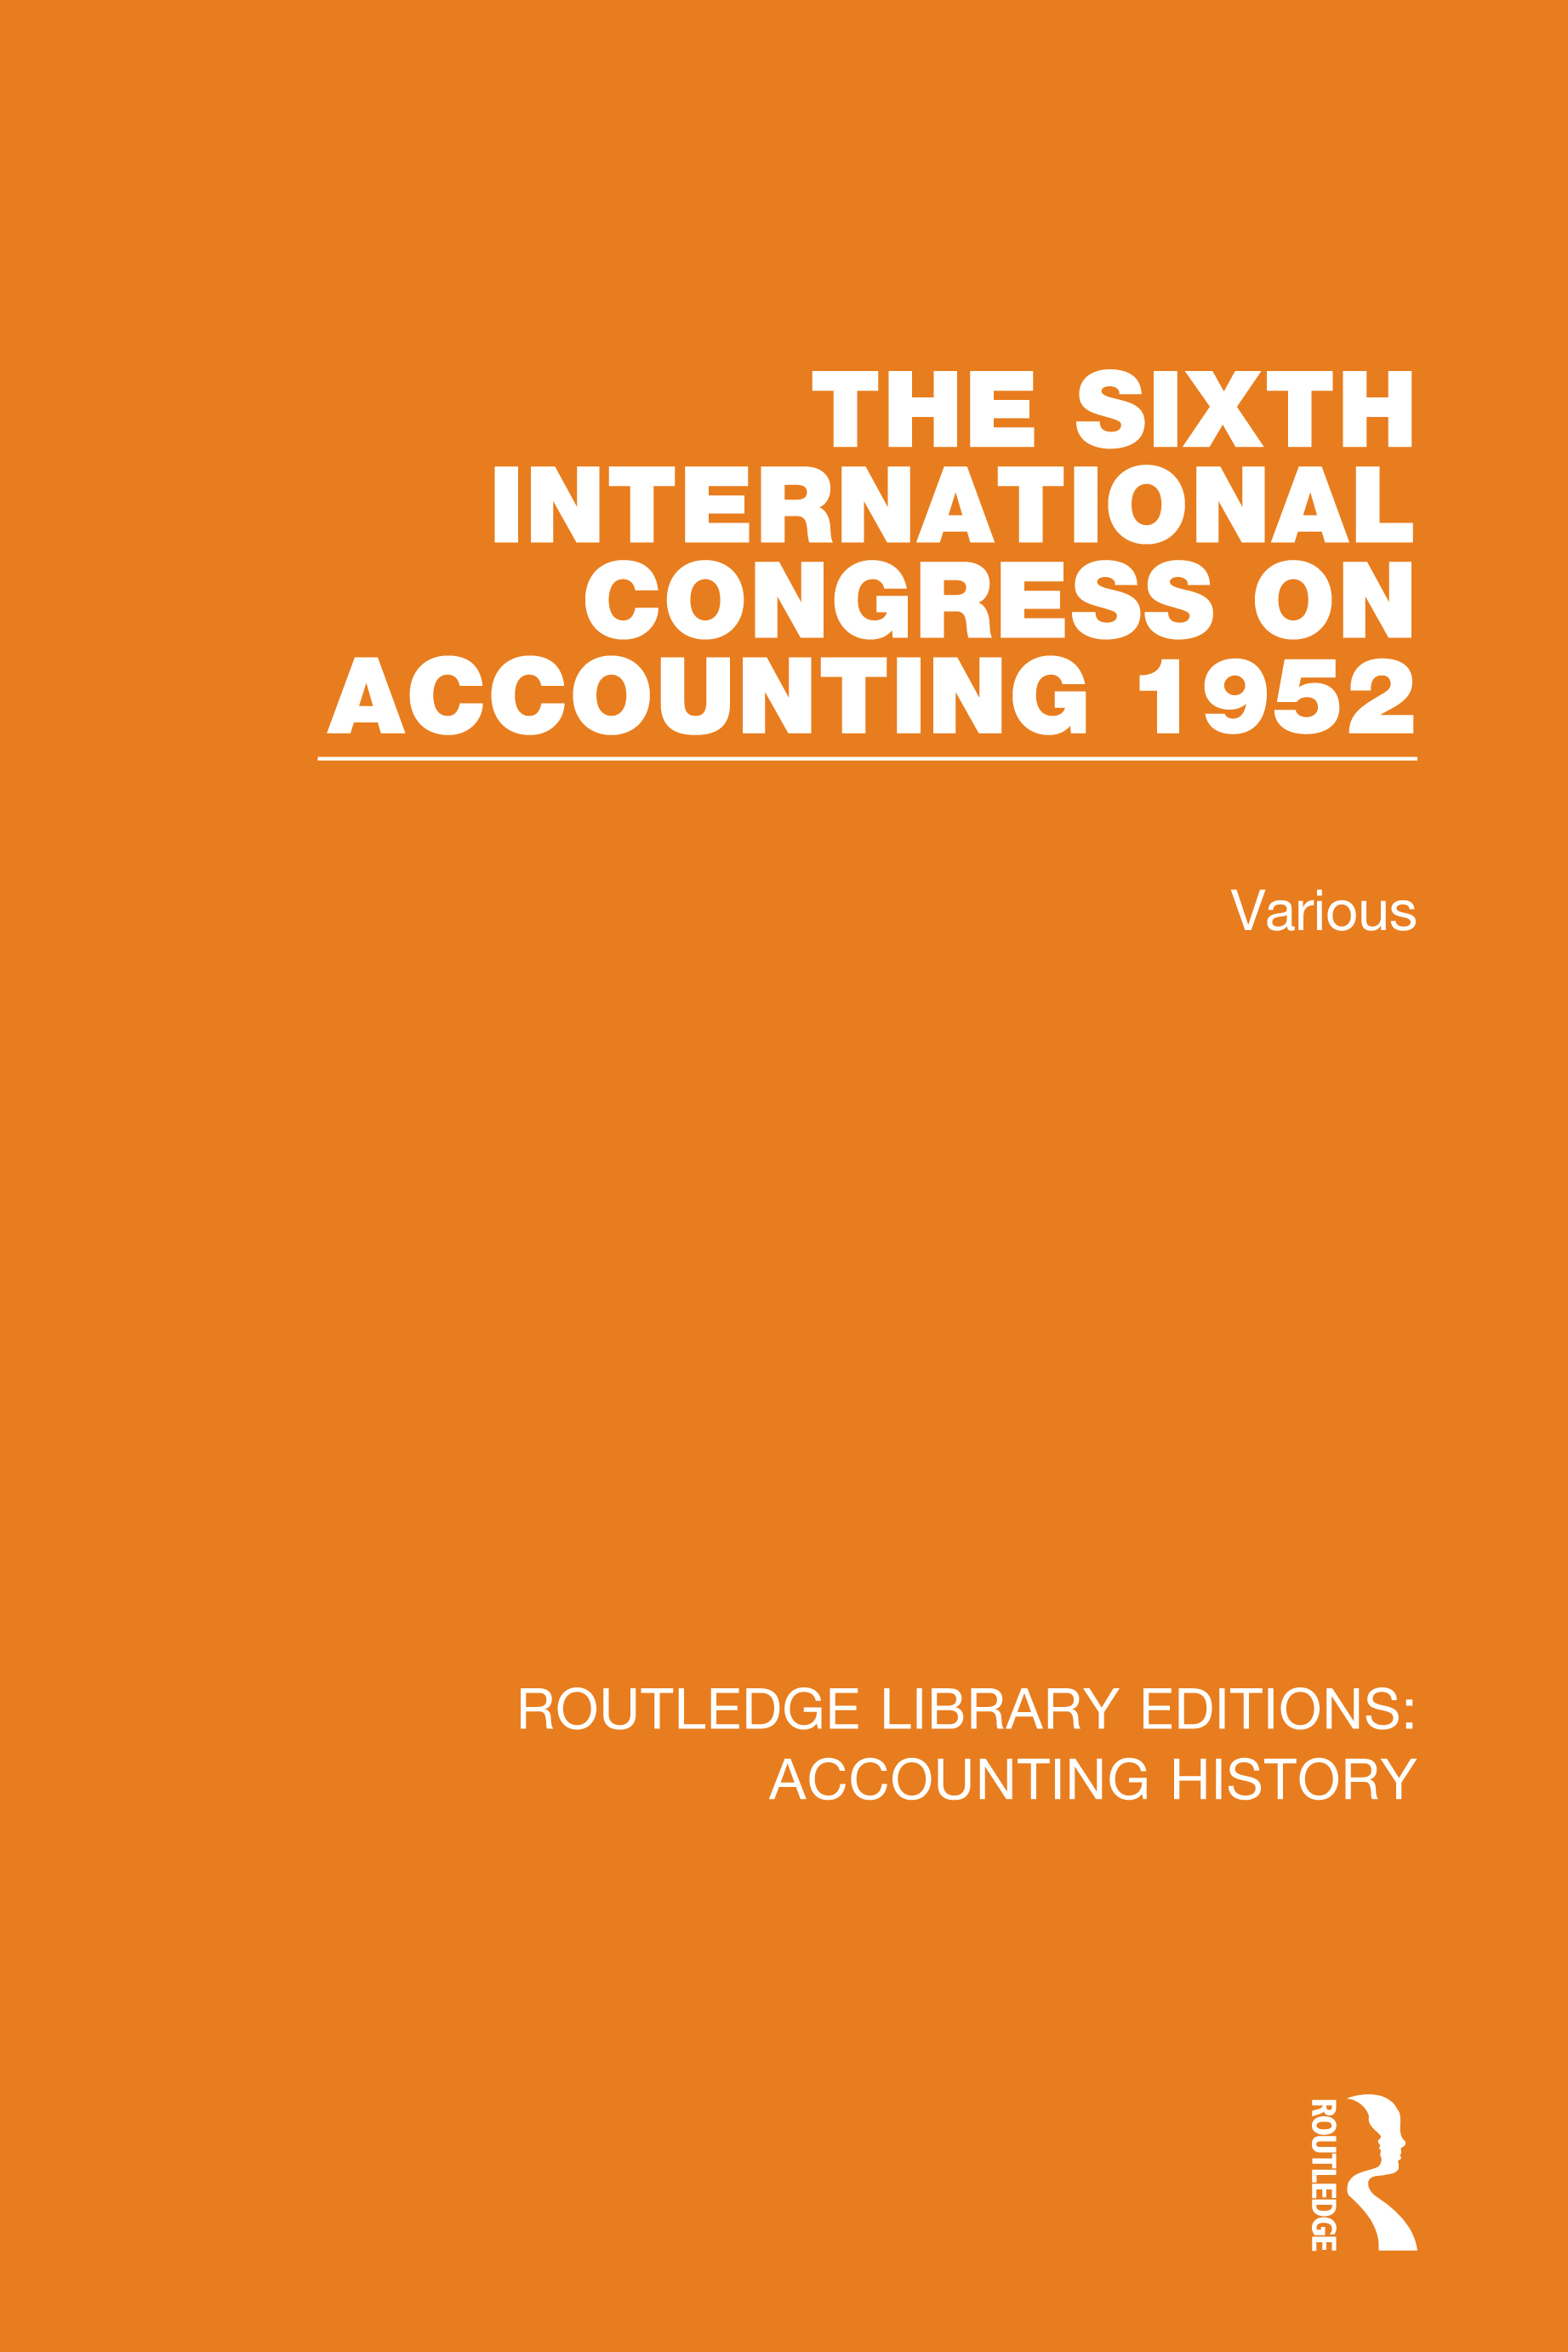 The Sixth International Congress on Accounting 1952